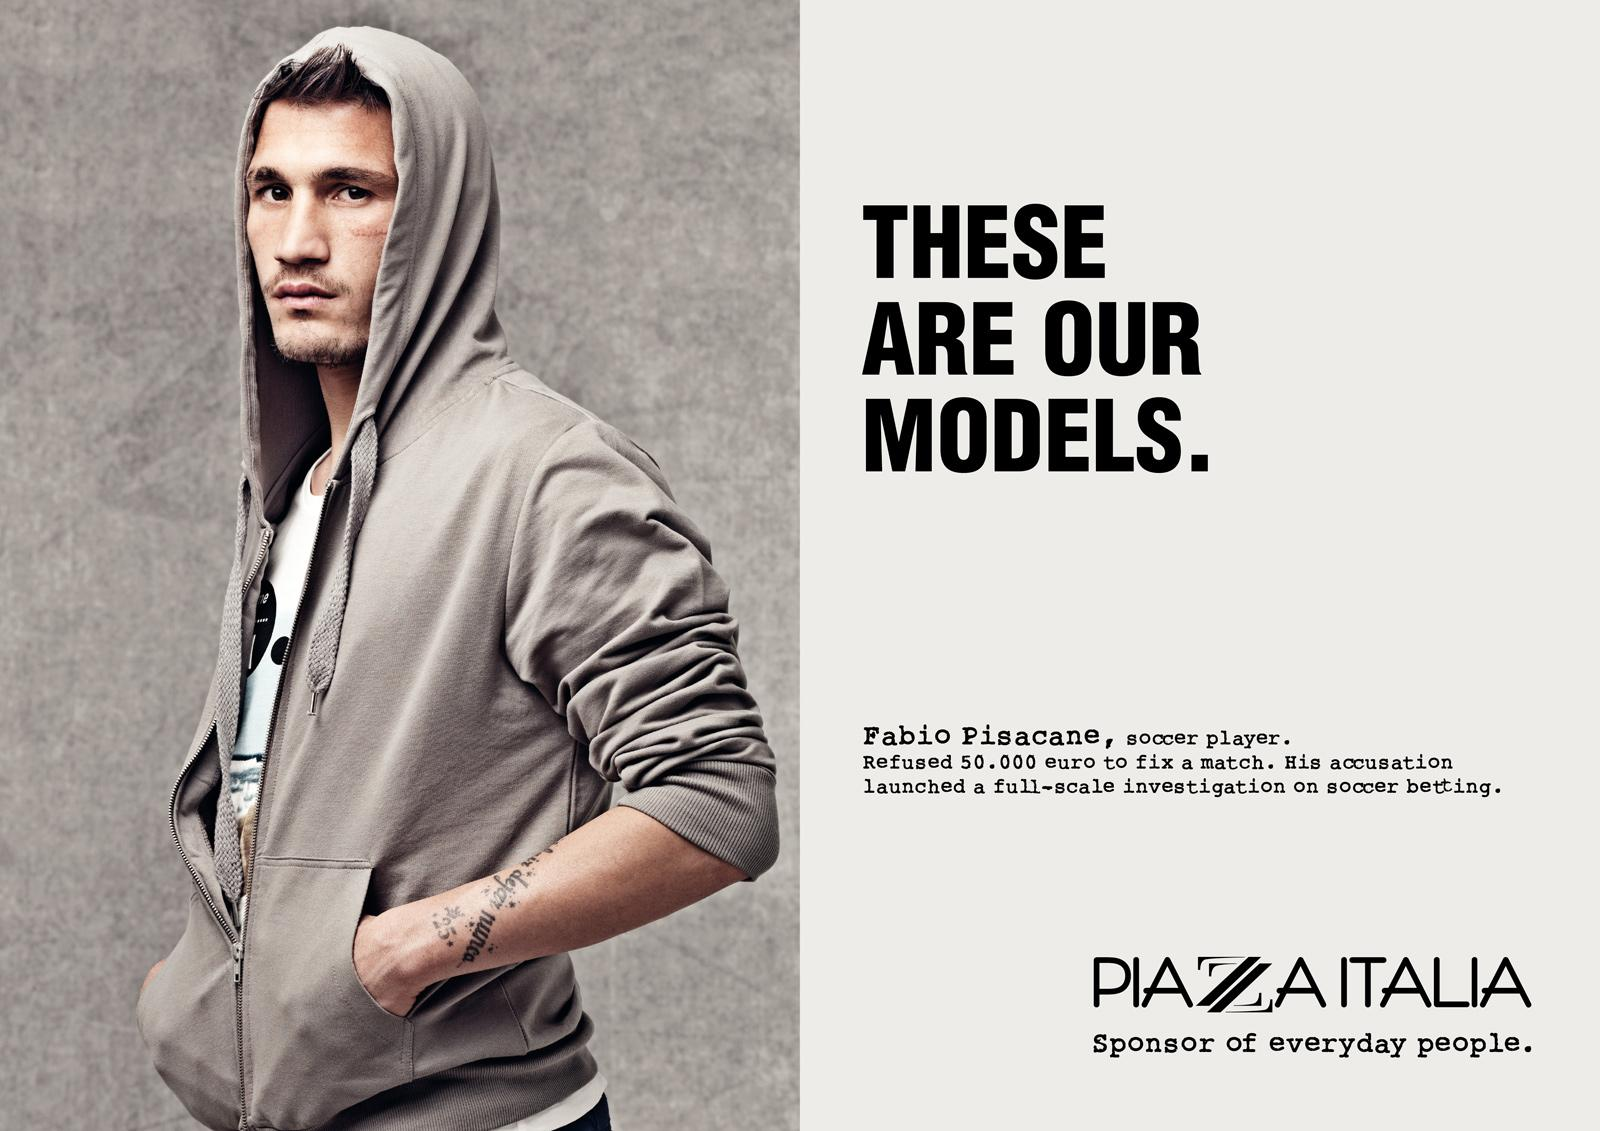 Piazza Italia Print Ad -  Our models, Pisacane